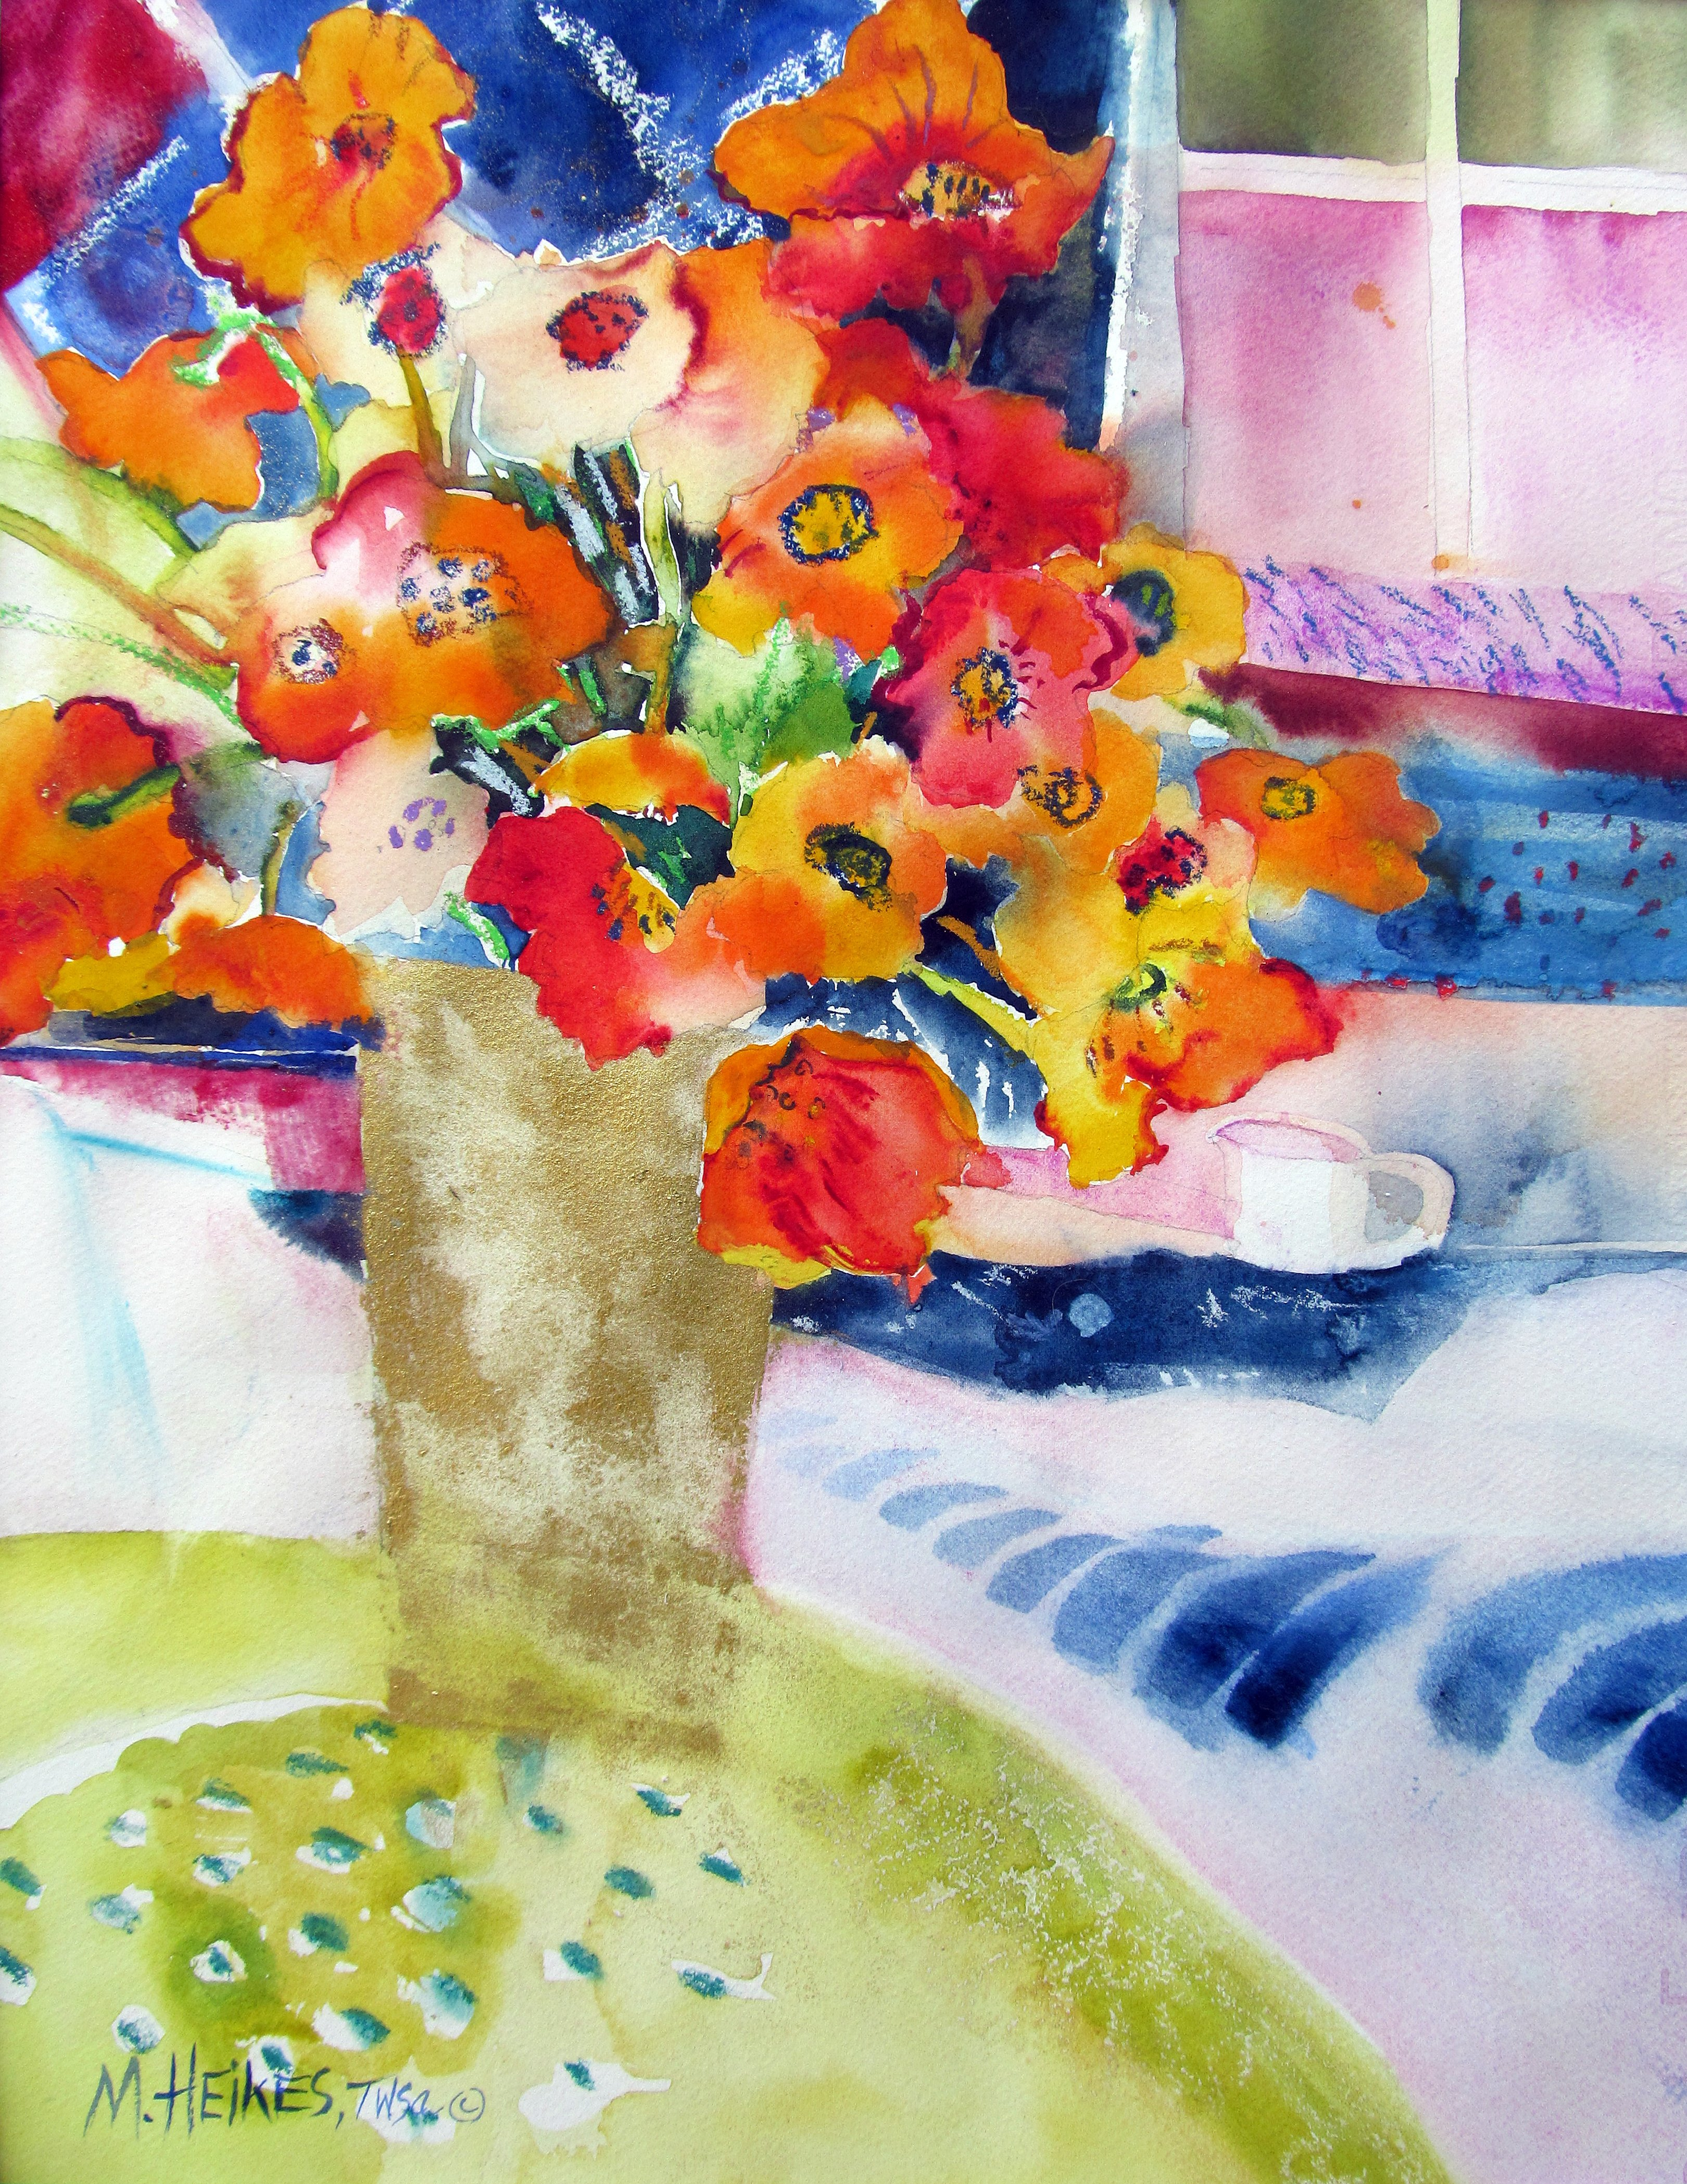 Tea Time / Iceland Poppies Bouquet